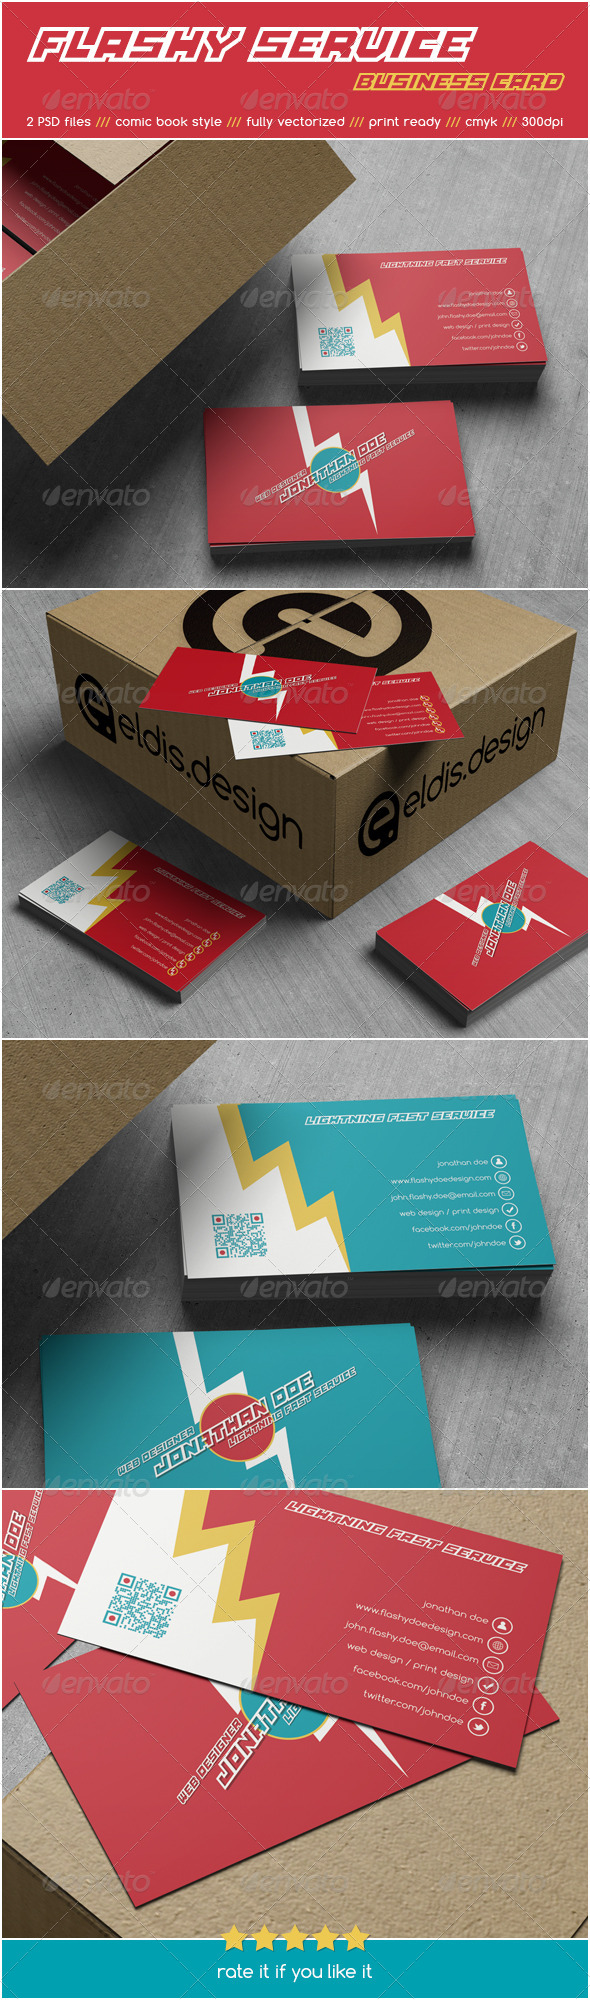 GraphicRiver Flashy Service Business Card 7490501